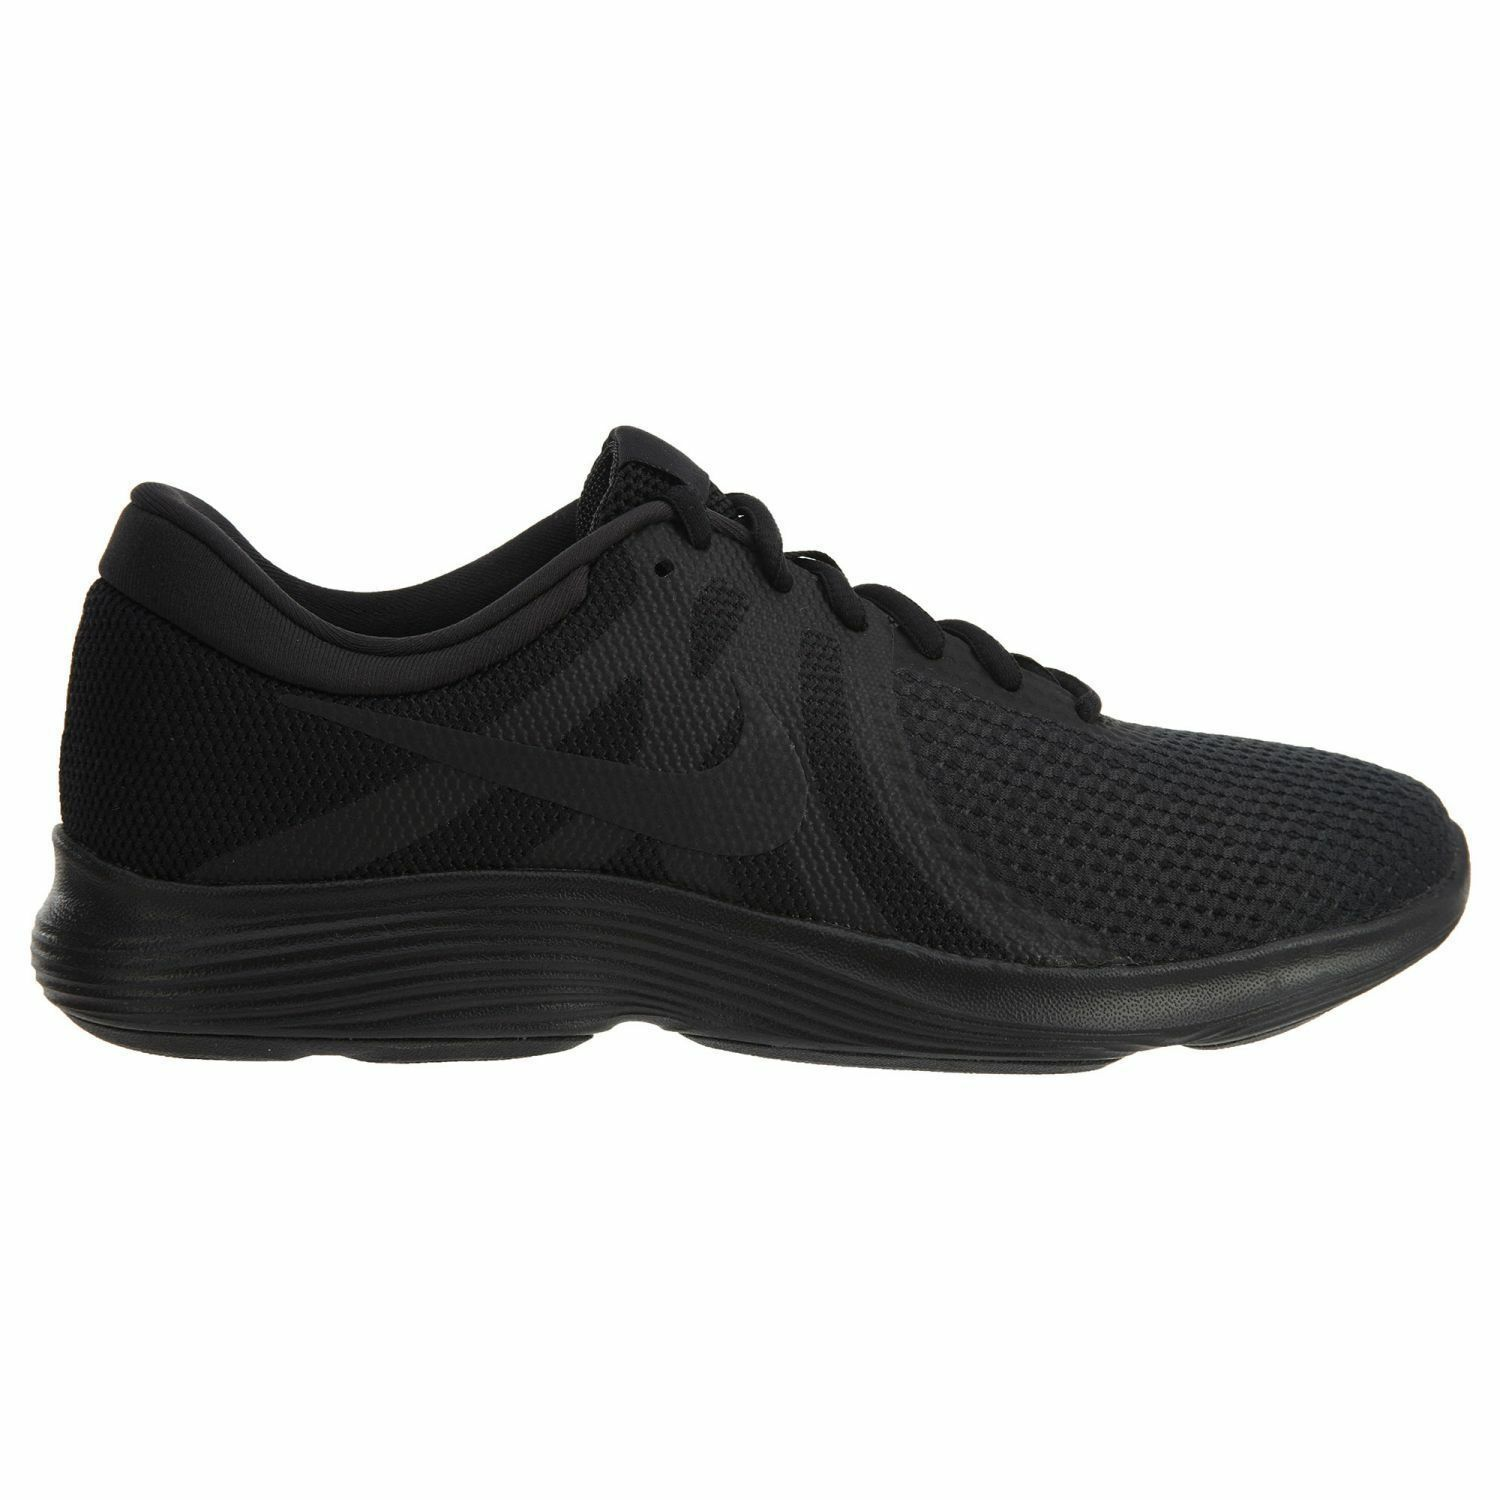 new products d7d27 82155 Nike REVOLUTION 4 amplia 4e Negro   Negro aa7402 002 002 002 Hombre running  Shoes Casual salvaje 6684b5